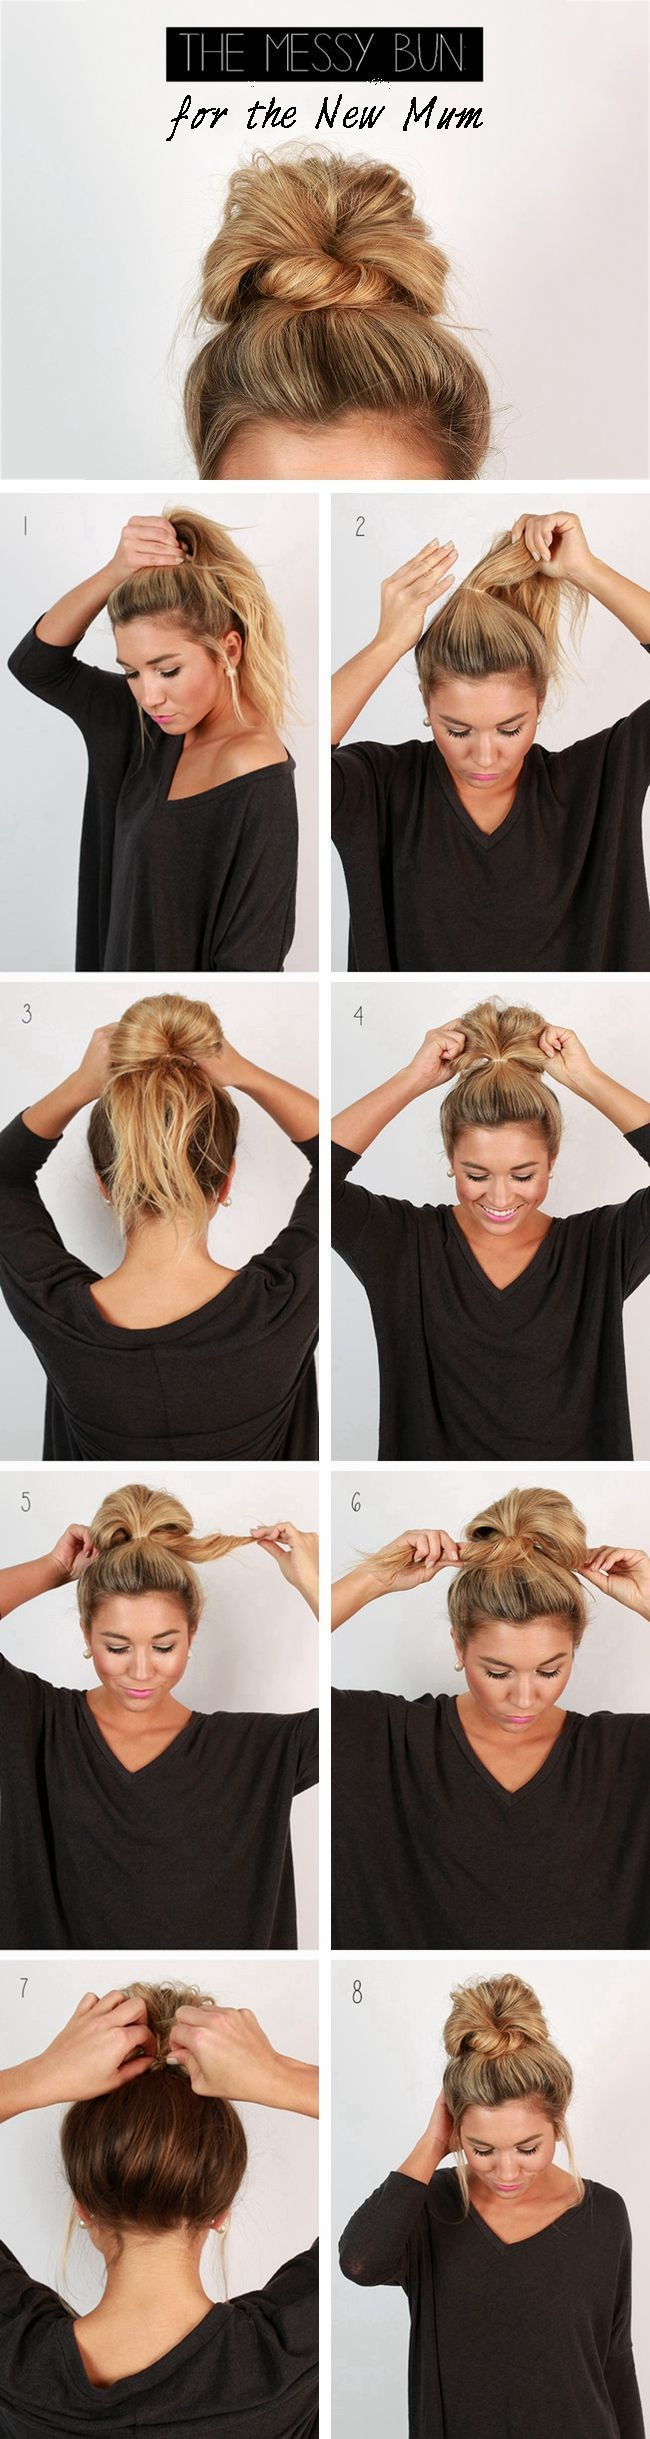 best and easy hairstyle ideas for summer hairstyles for